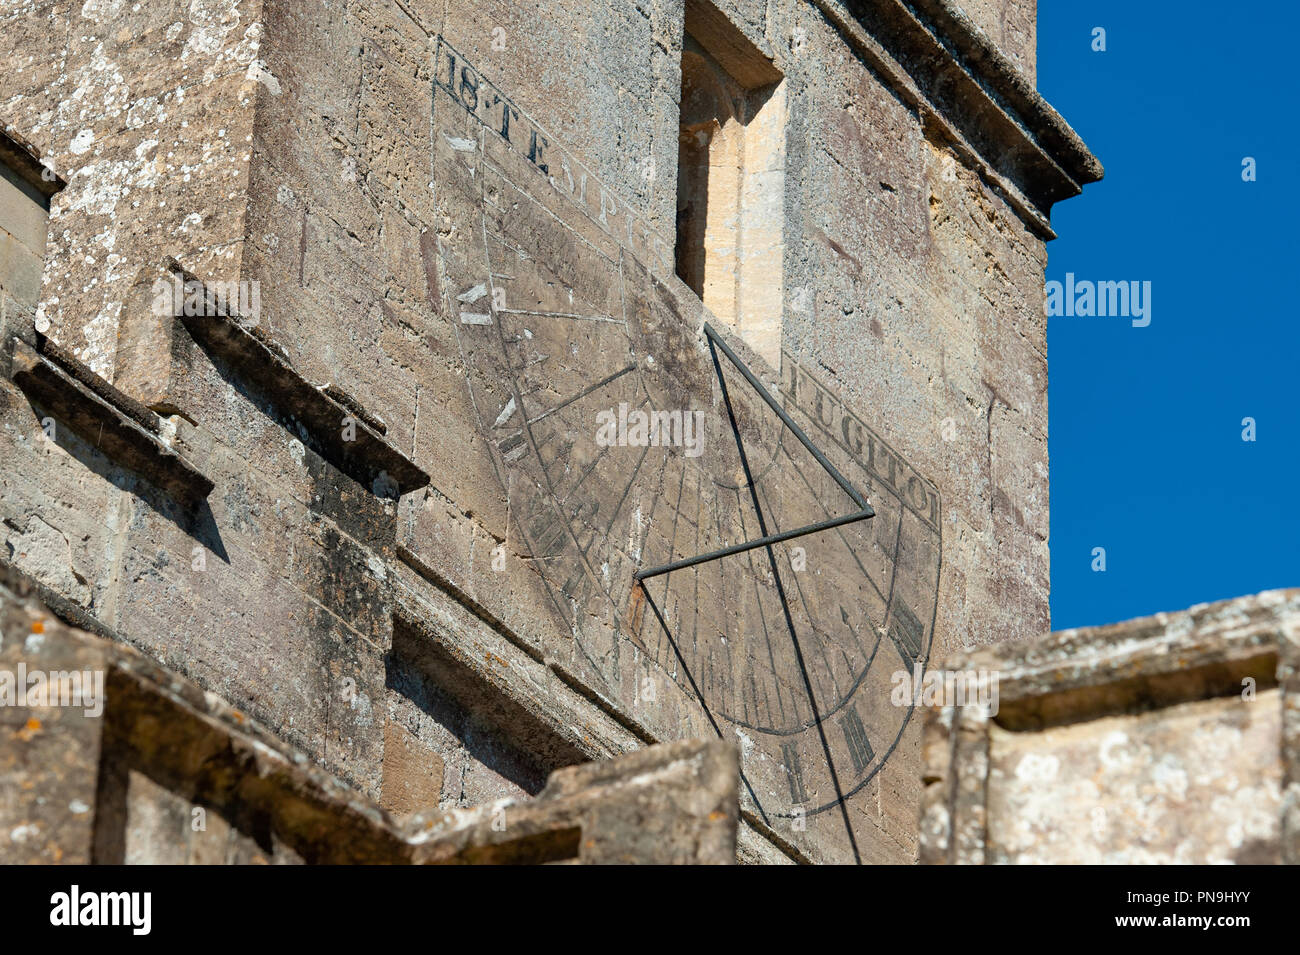 St James Church, Bratton, Wiltshire, UK. - Stock Image